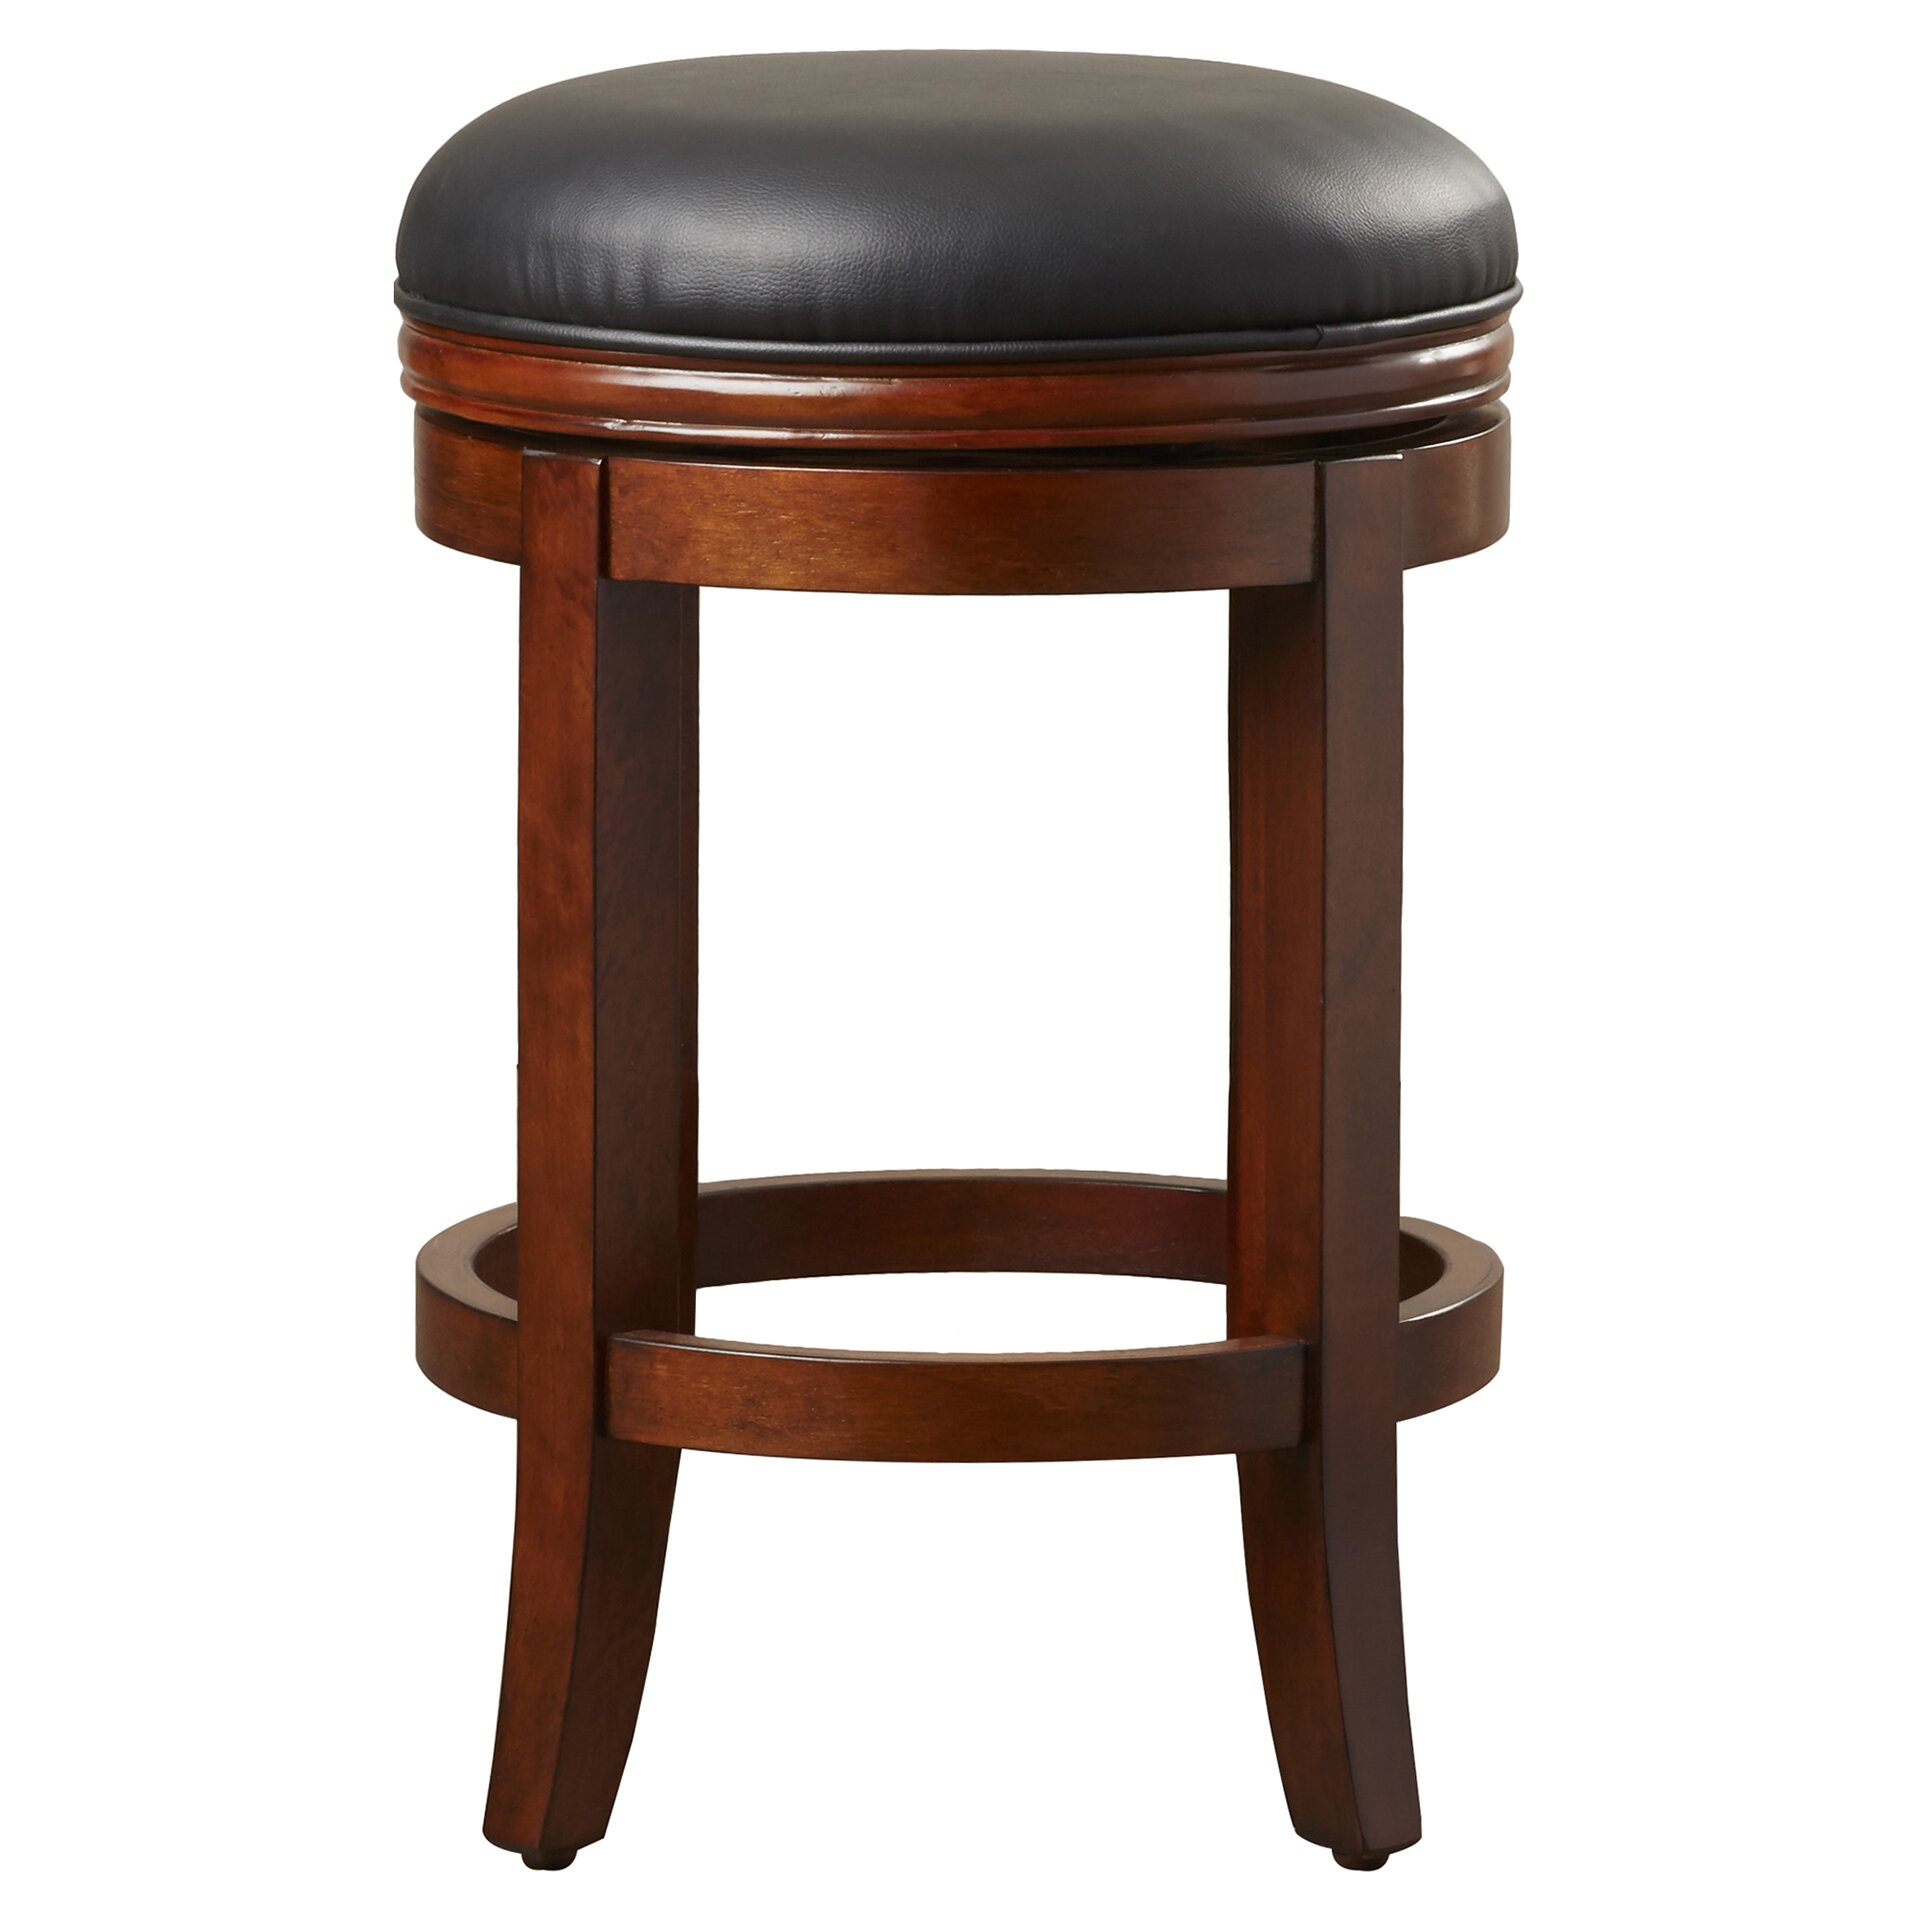 Darby home co champneys 26 swivel bar stool reviews for Bar stools clearance